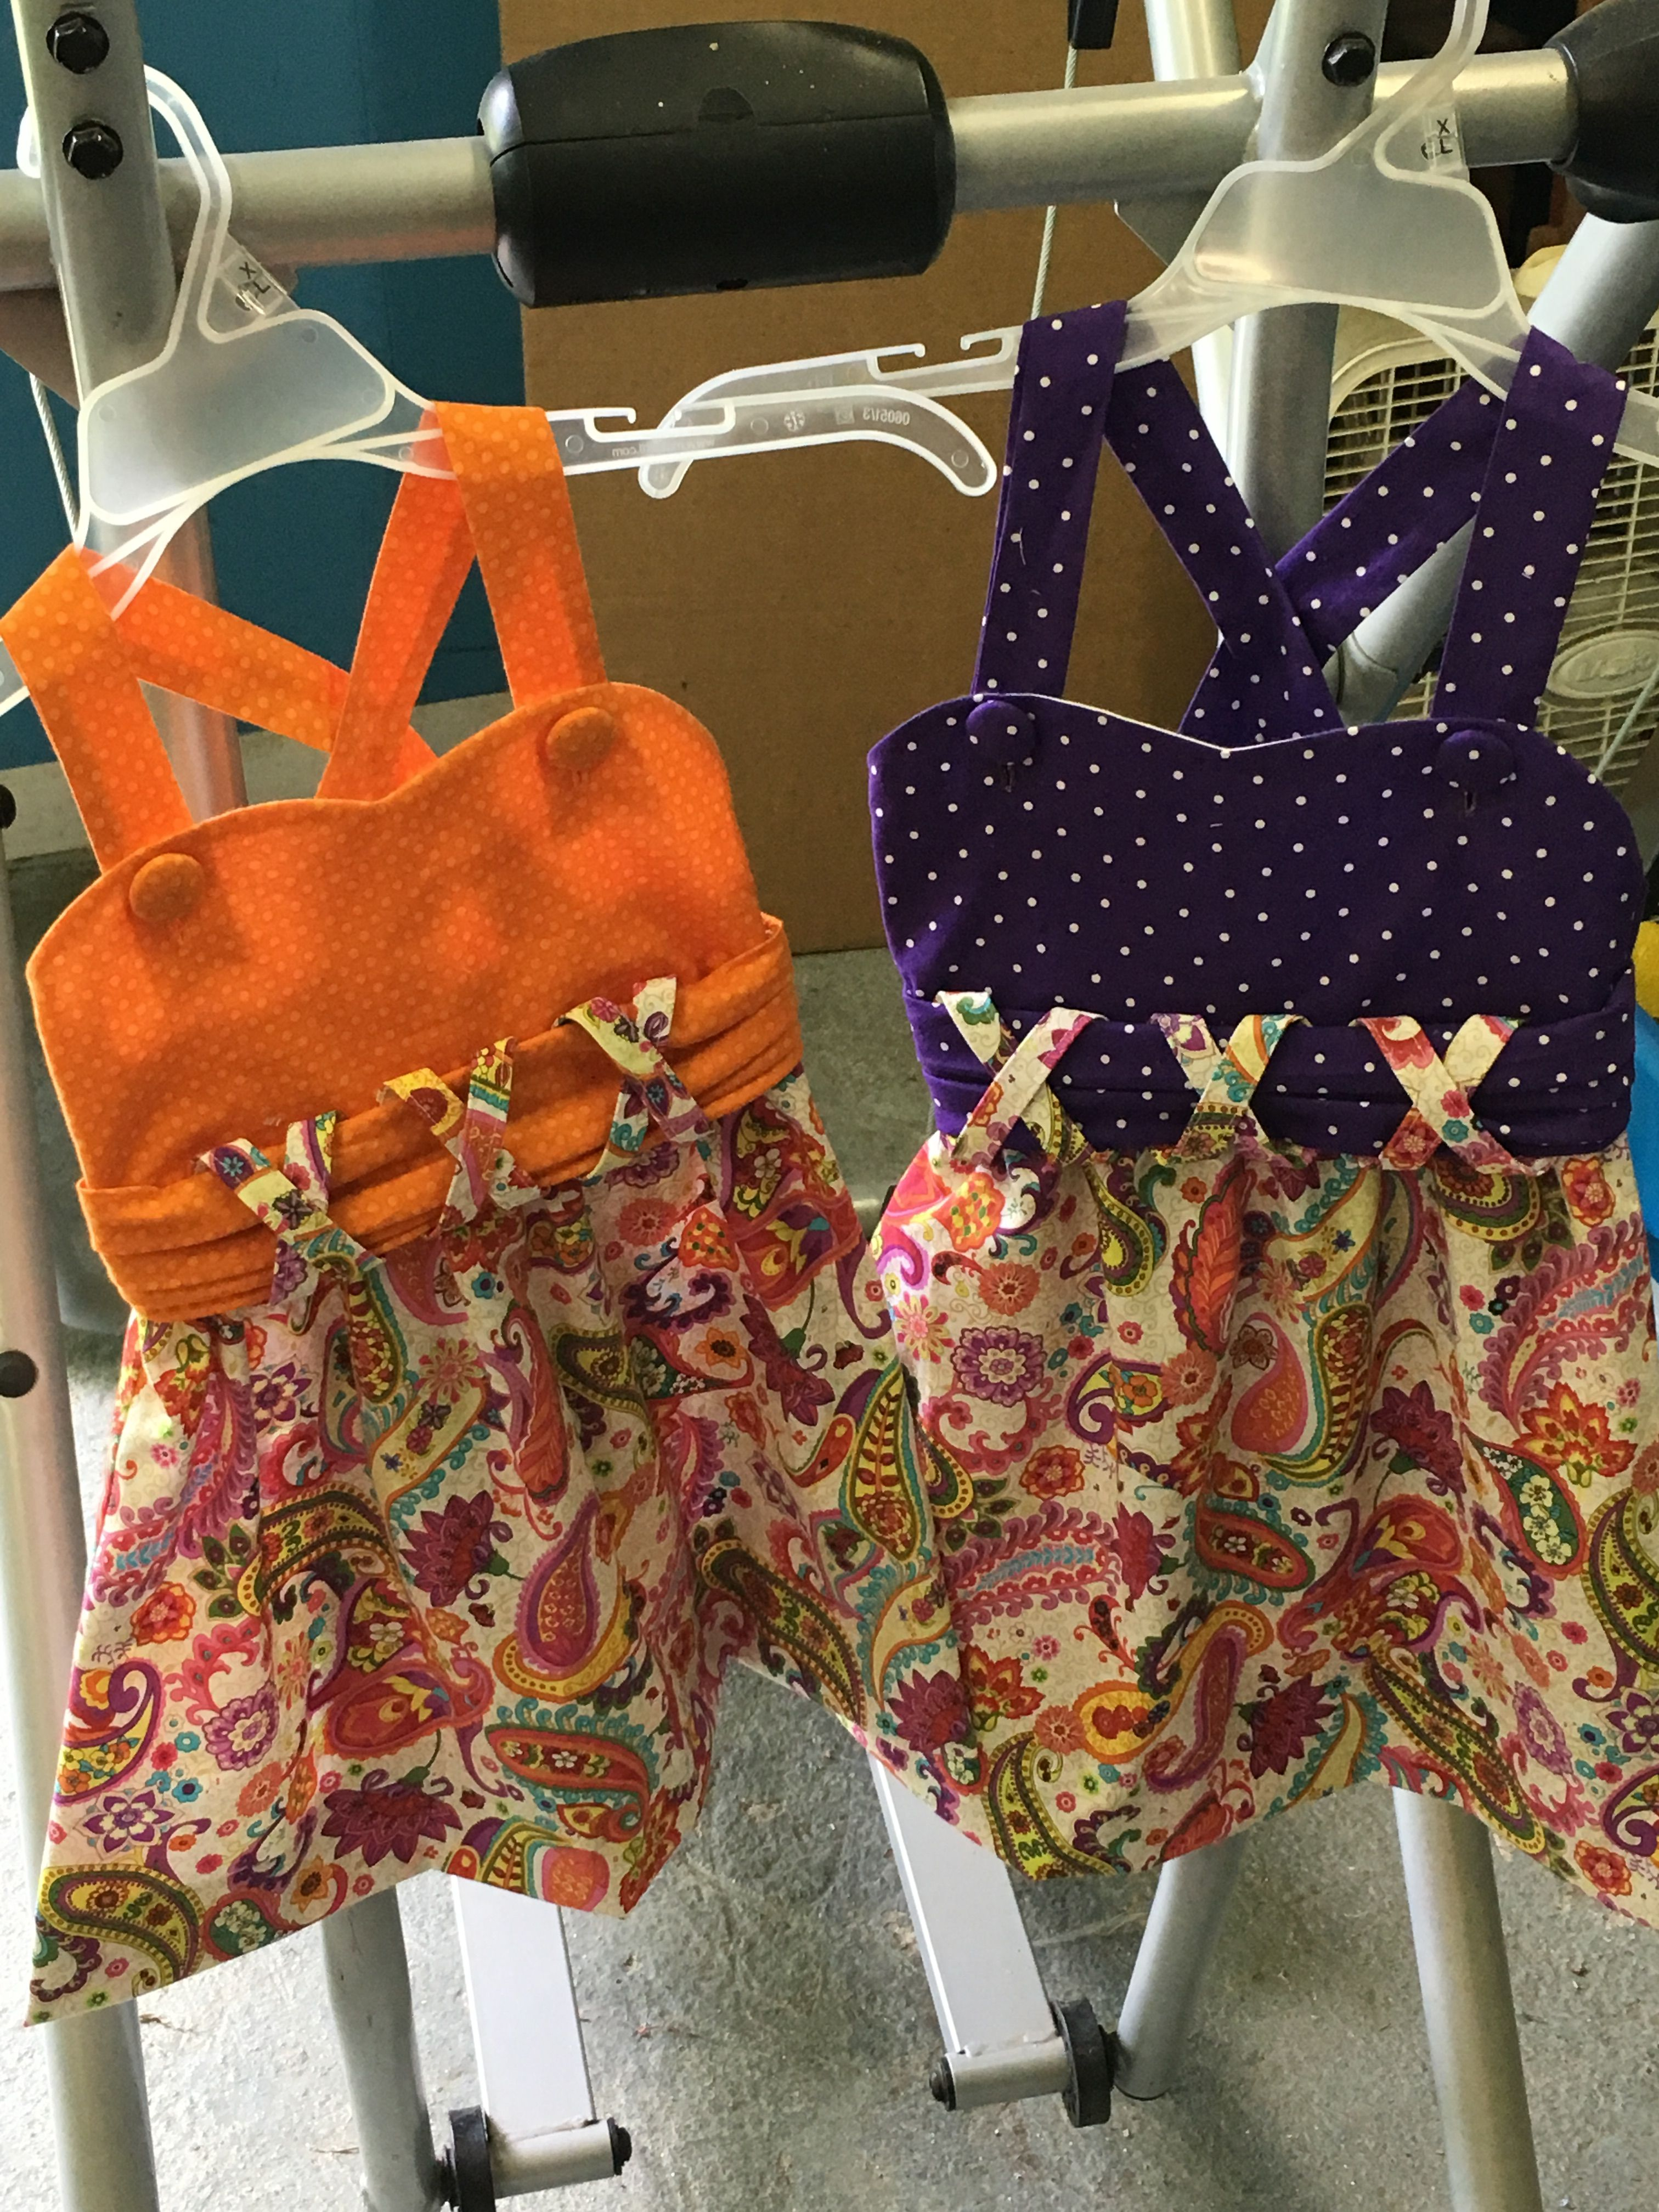 Sundresses that I made for those sweet little girls in their favorite colors.